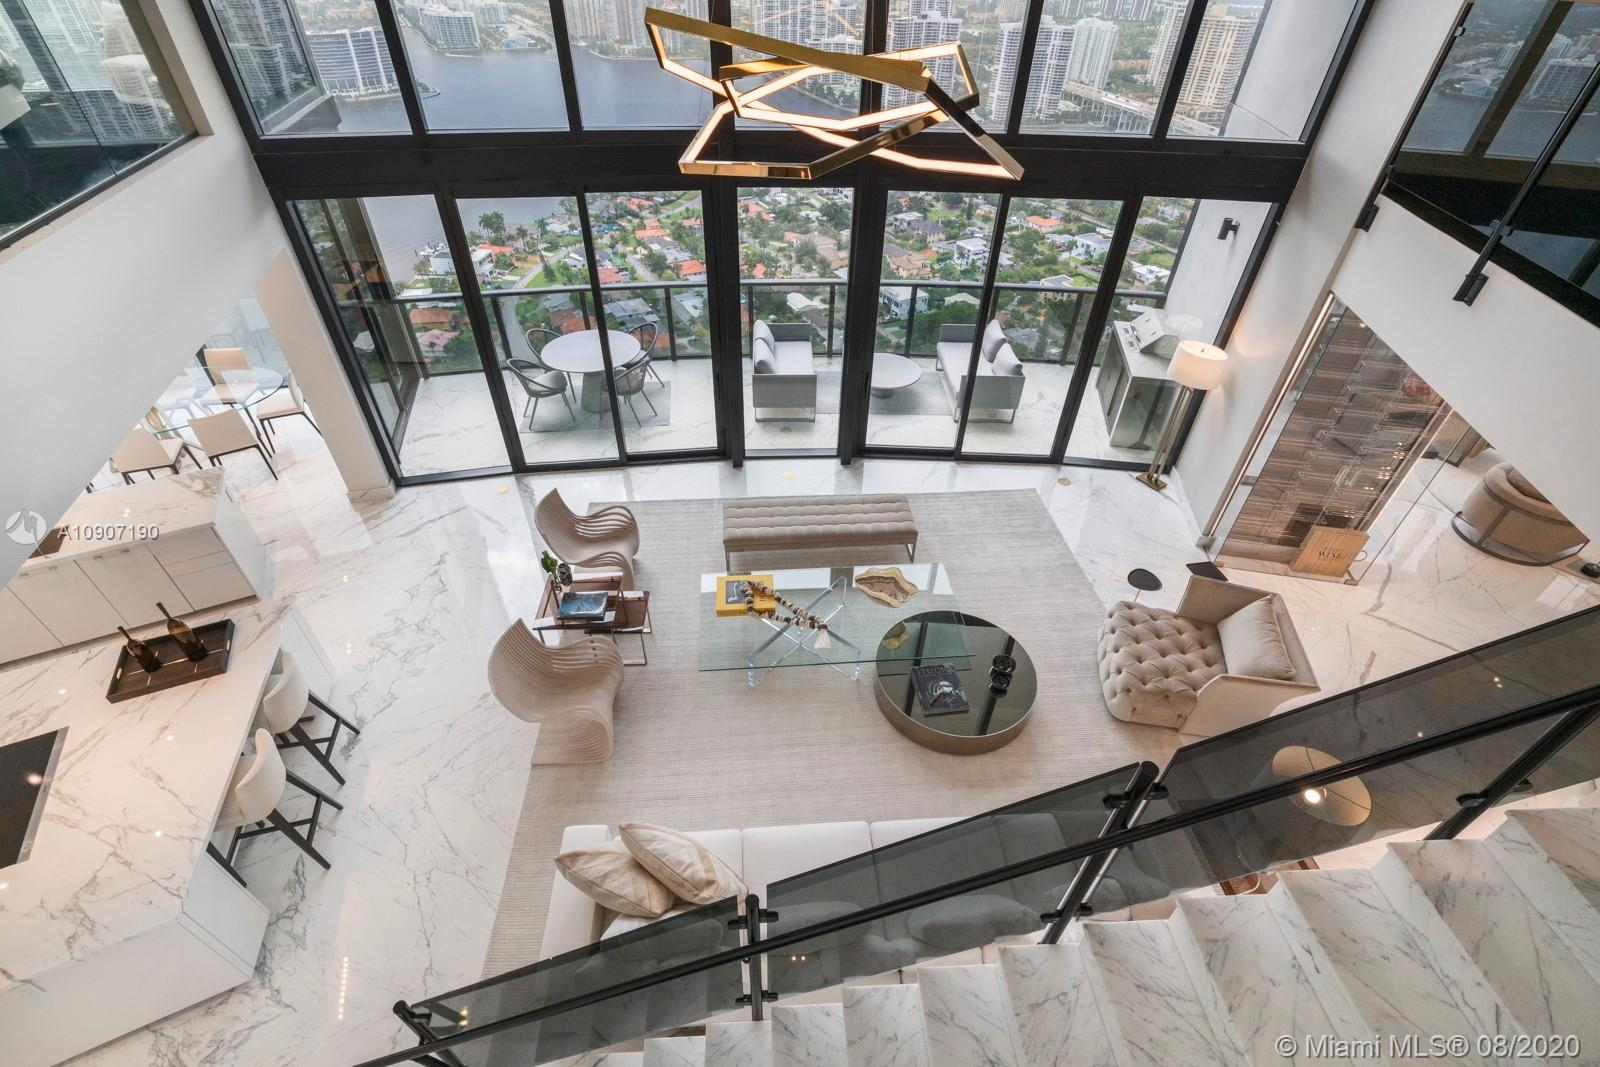 18555 Collins Ave, Unit #4204 Luxury Real Estate